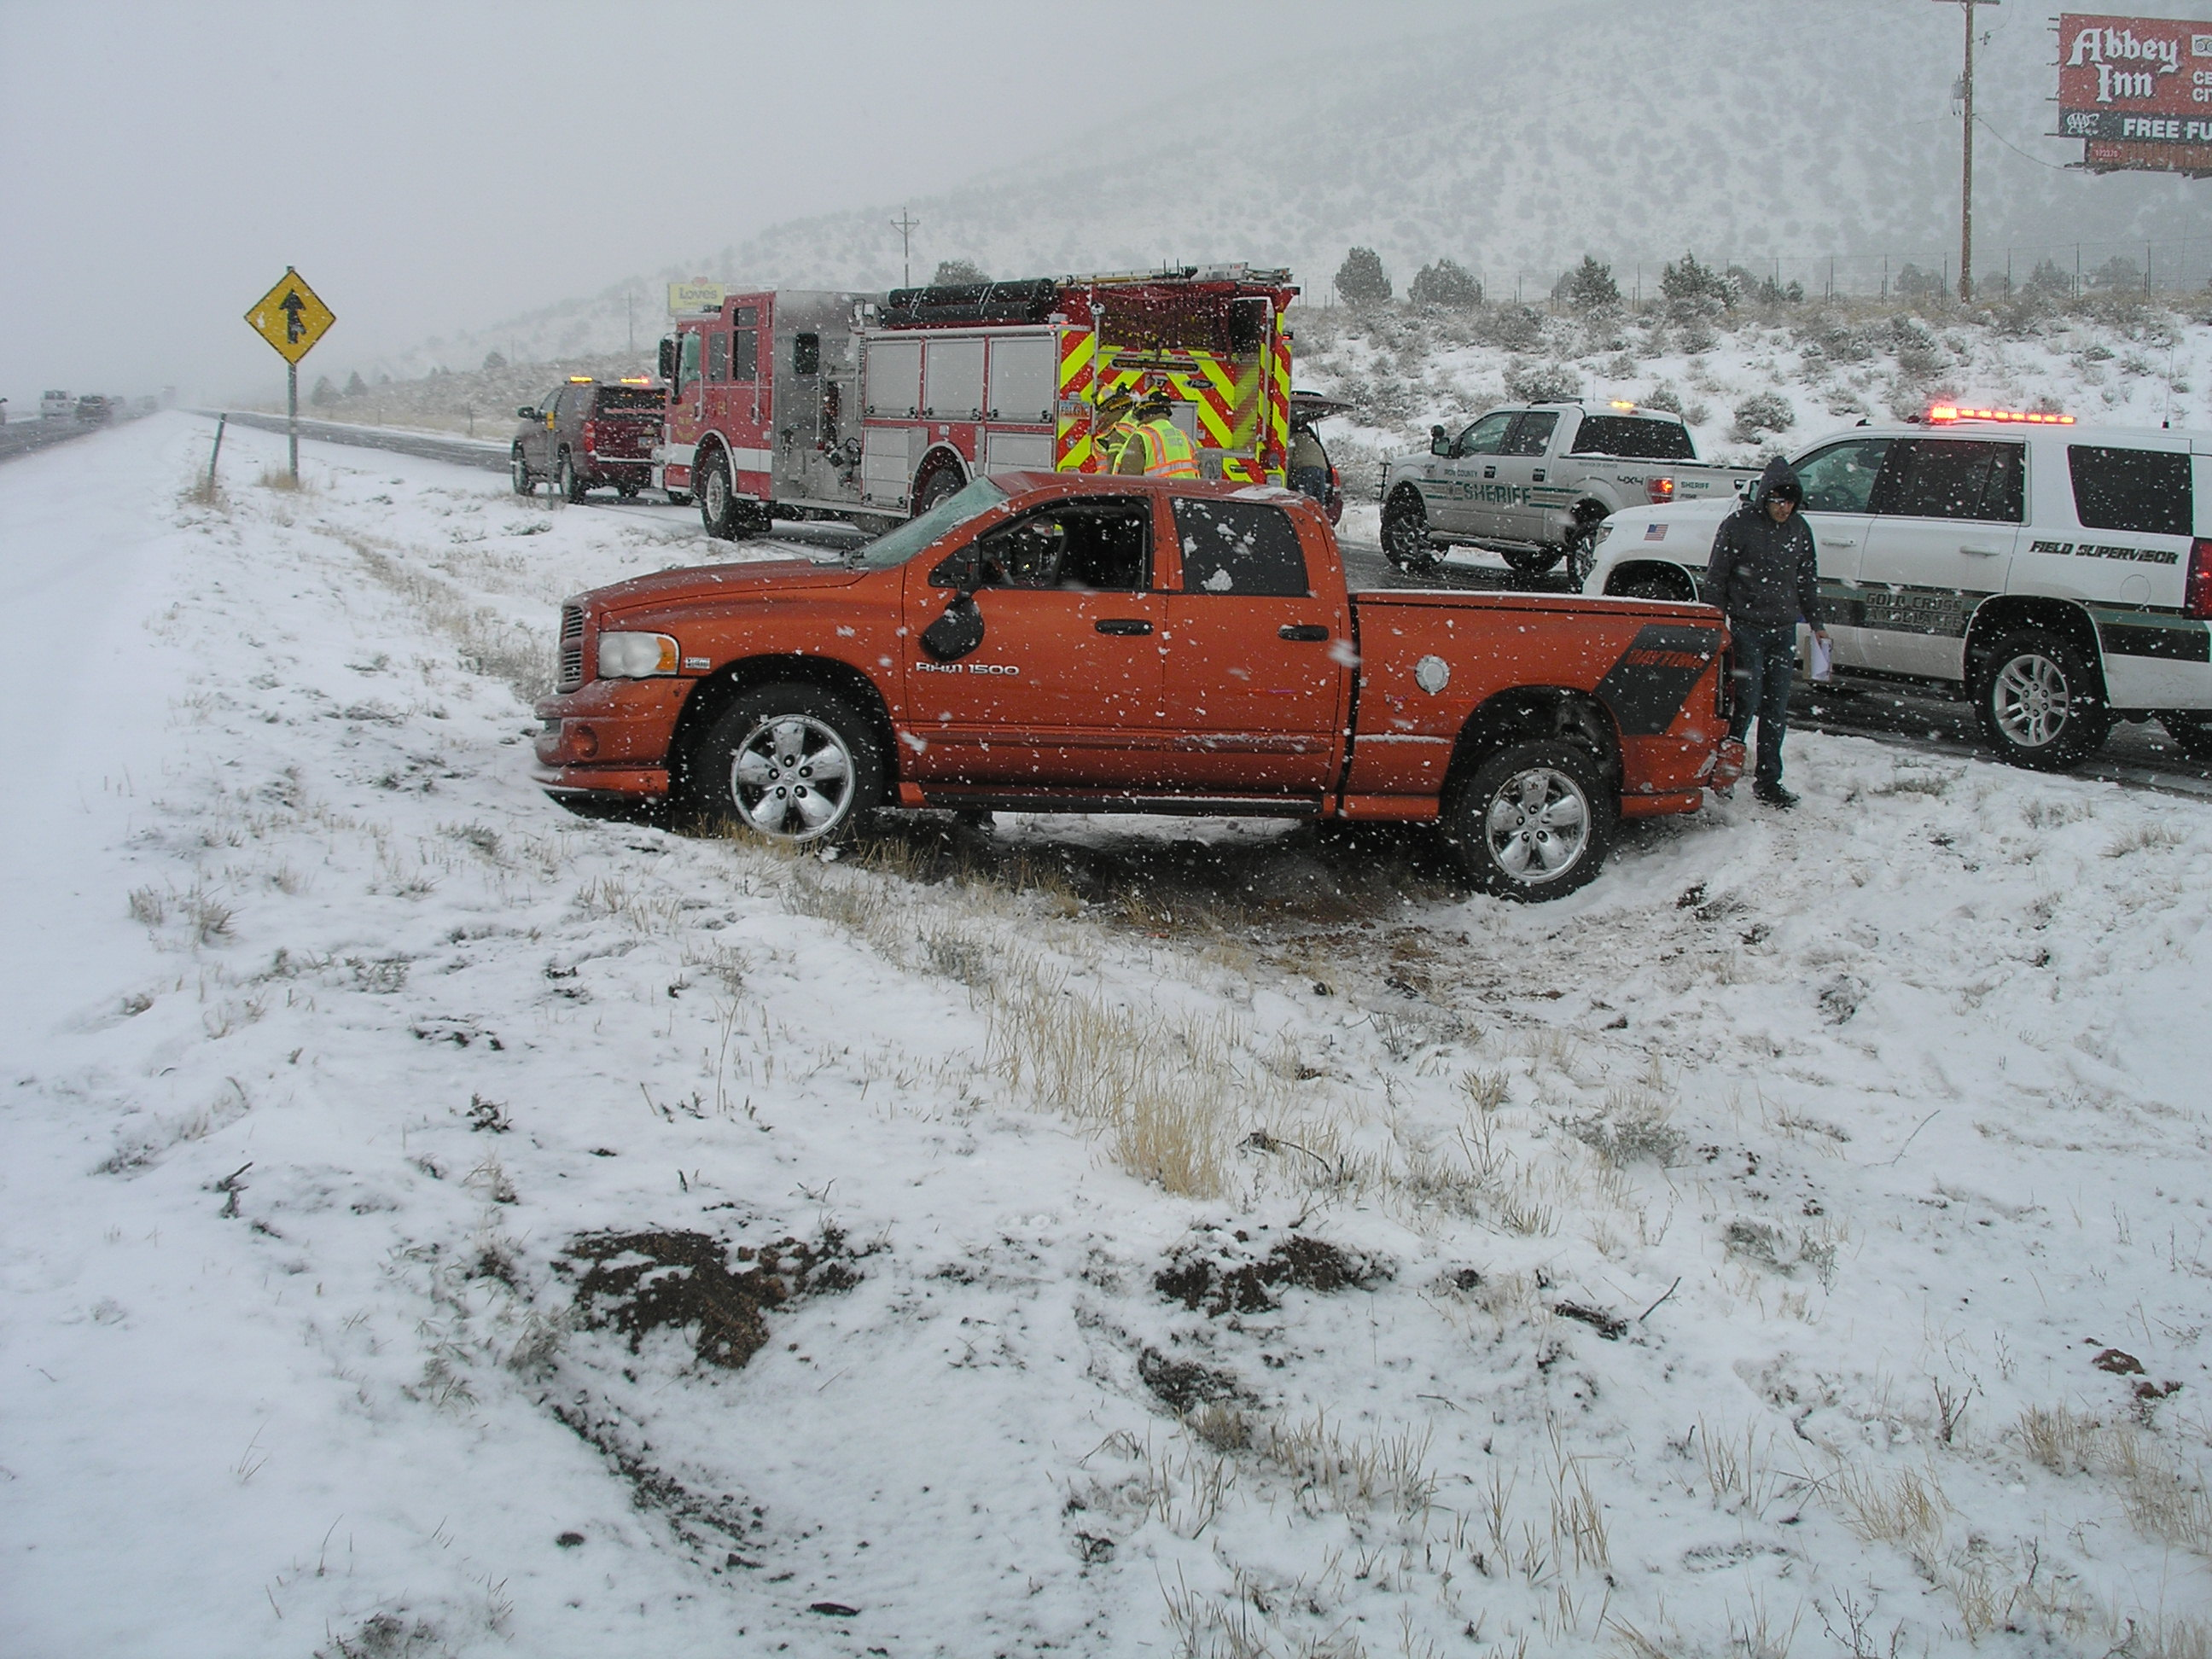 Officials reported Friday a family of five walked away from this rollover on Interstate 15 because they were wearing seat belts, Cedar City, Utah, Nov. 27, 2015 | Photo courtesy of Utah Highway Patrol, Cedar City News